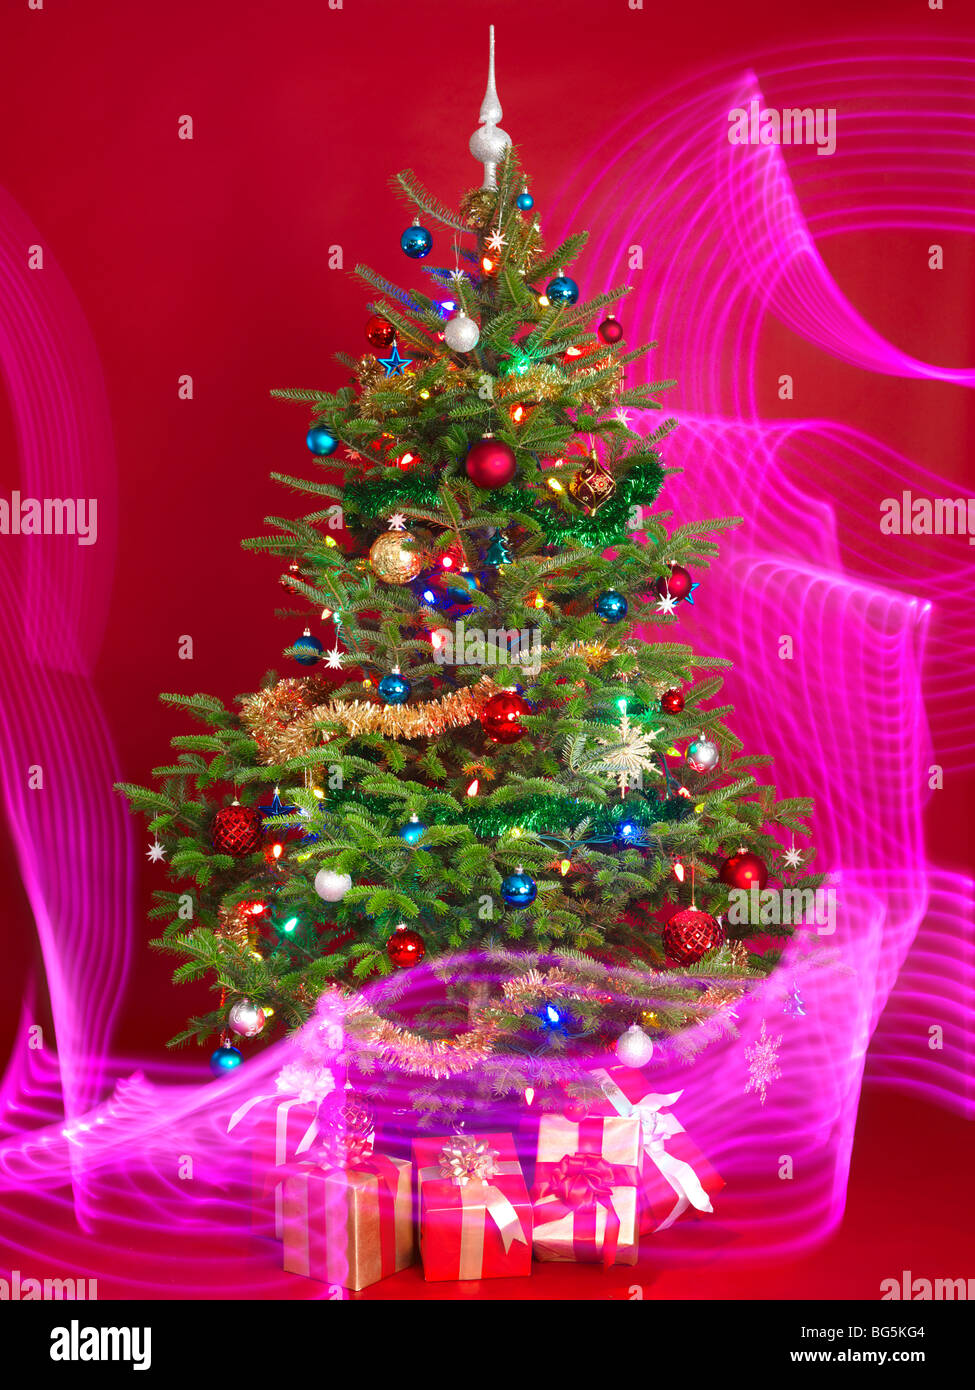 Decorated Christmas tree with purple lighting effects around it Stock Photo